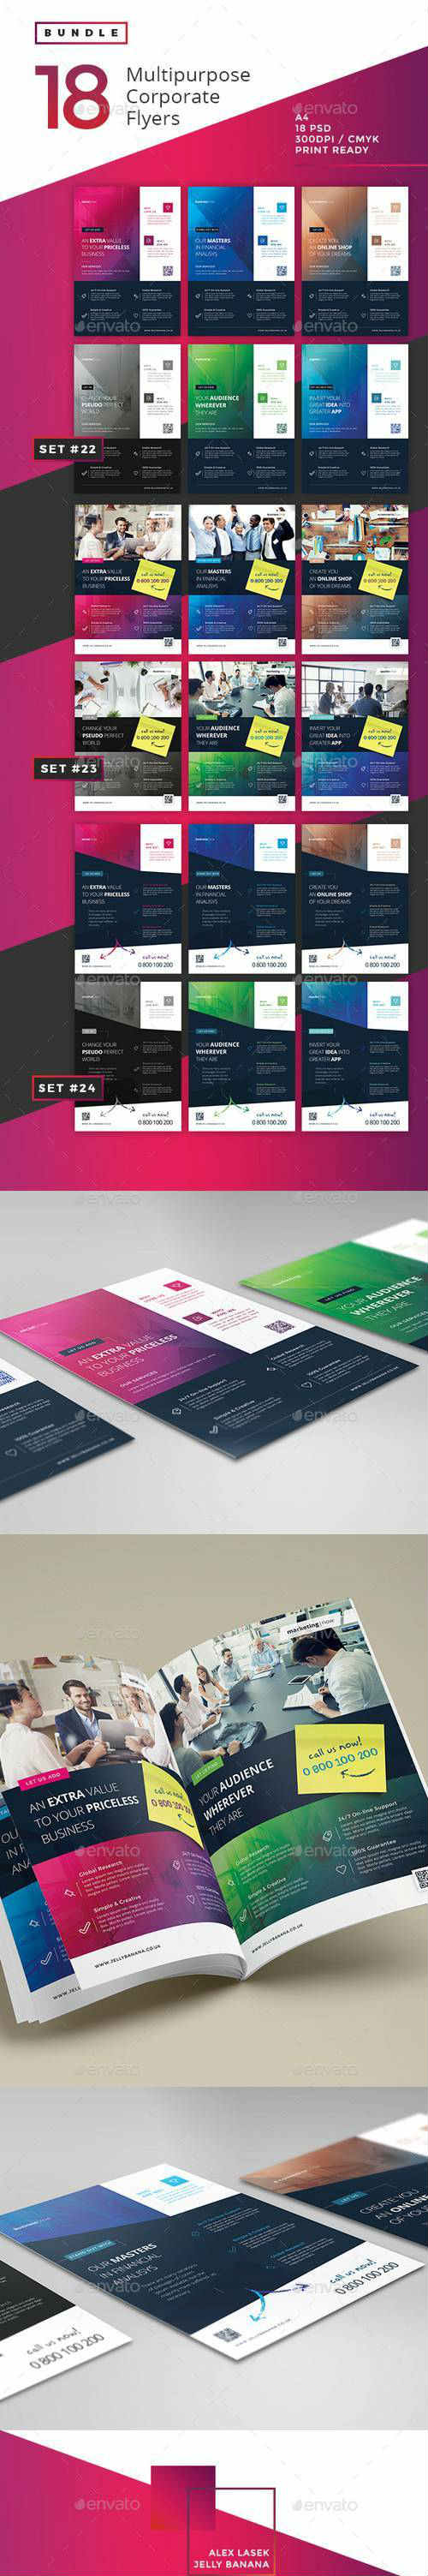 Corporate Flyer Bundle 8 - 18PSD 14322187